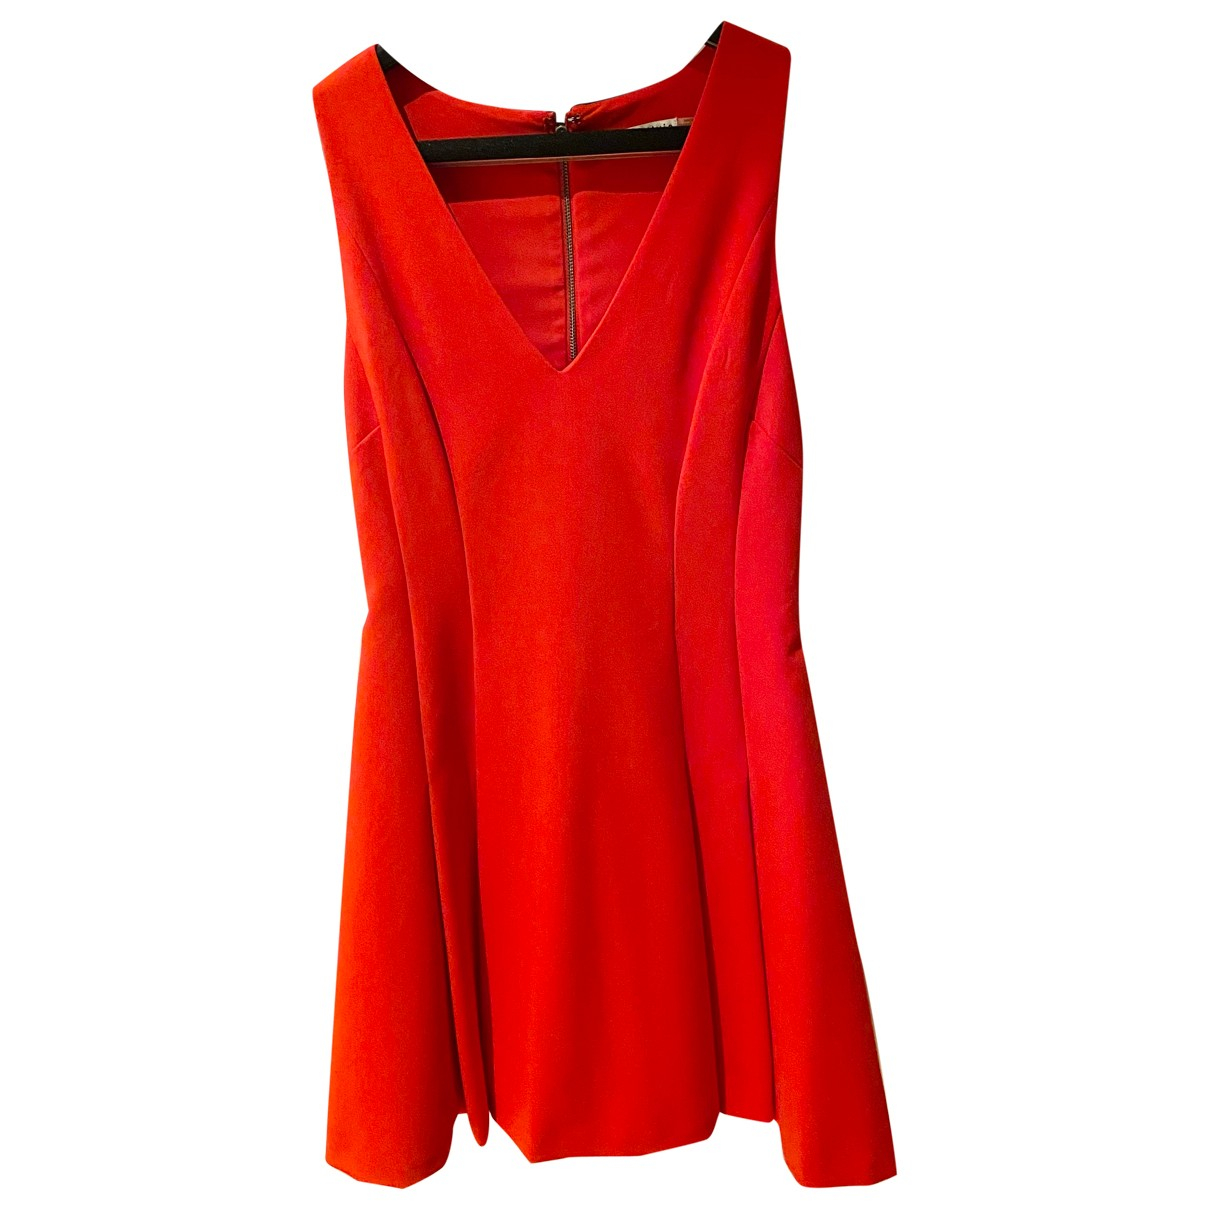 Alice & Olivia - Robe   pour femme - rouge